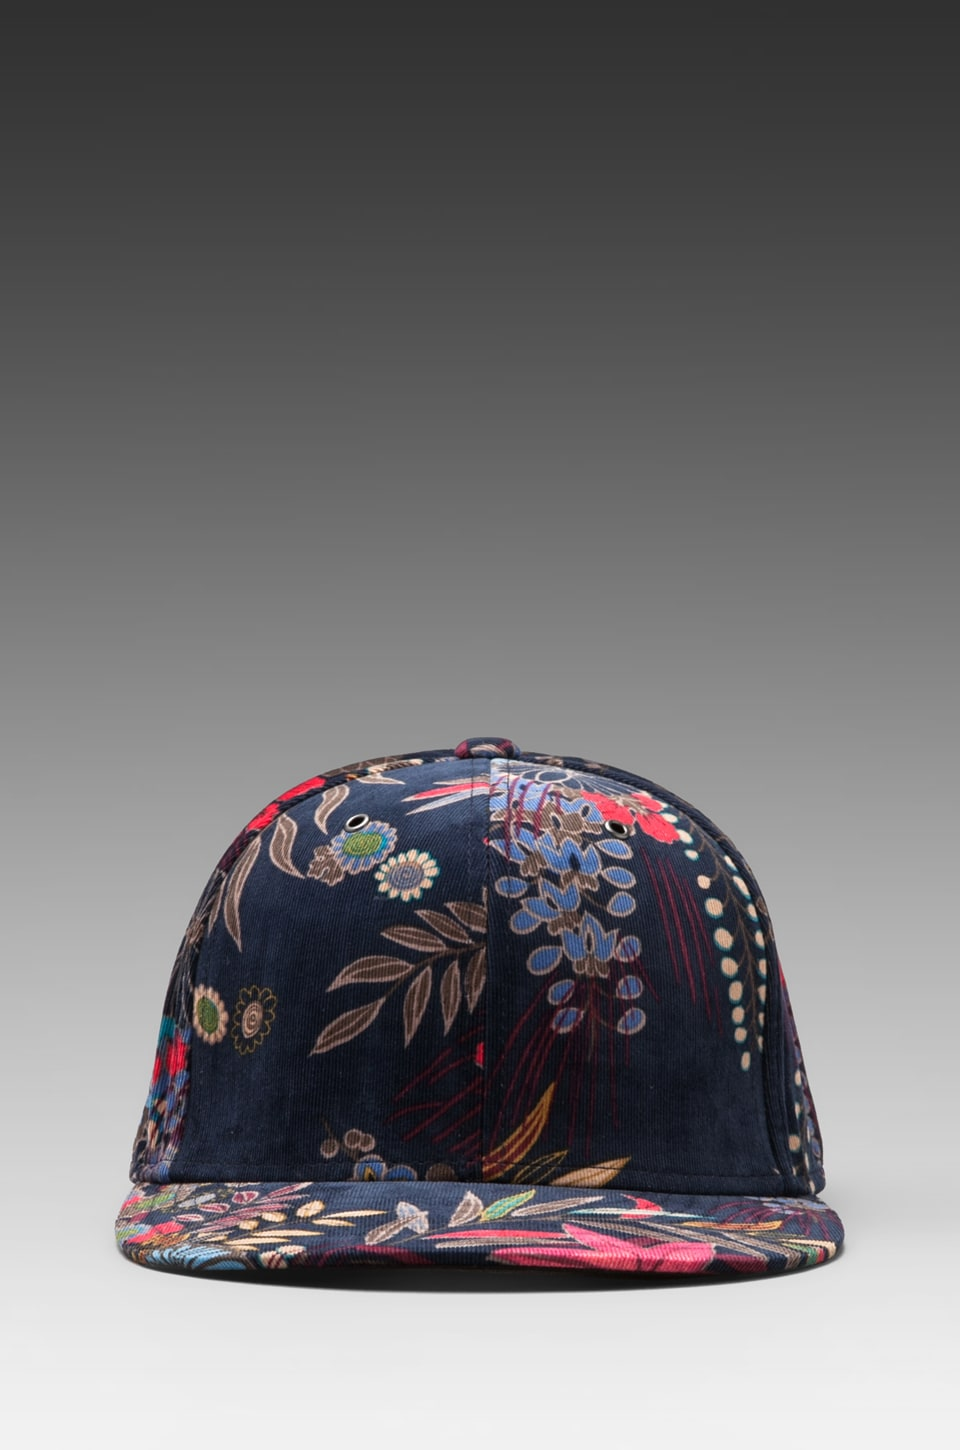 Marc by Marc Jacobs Wichita Floral Hat in Total Eclipse Multi